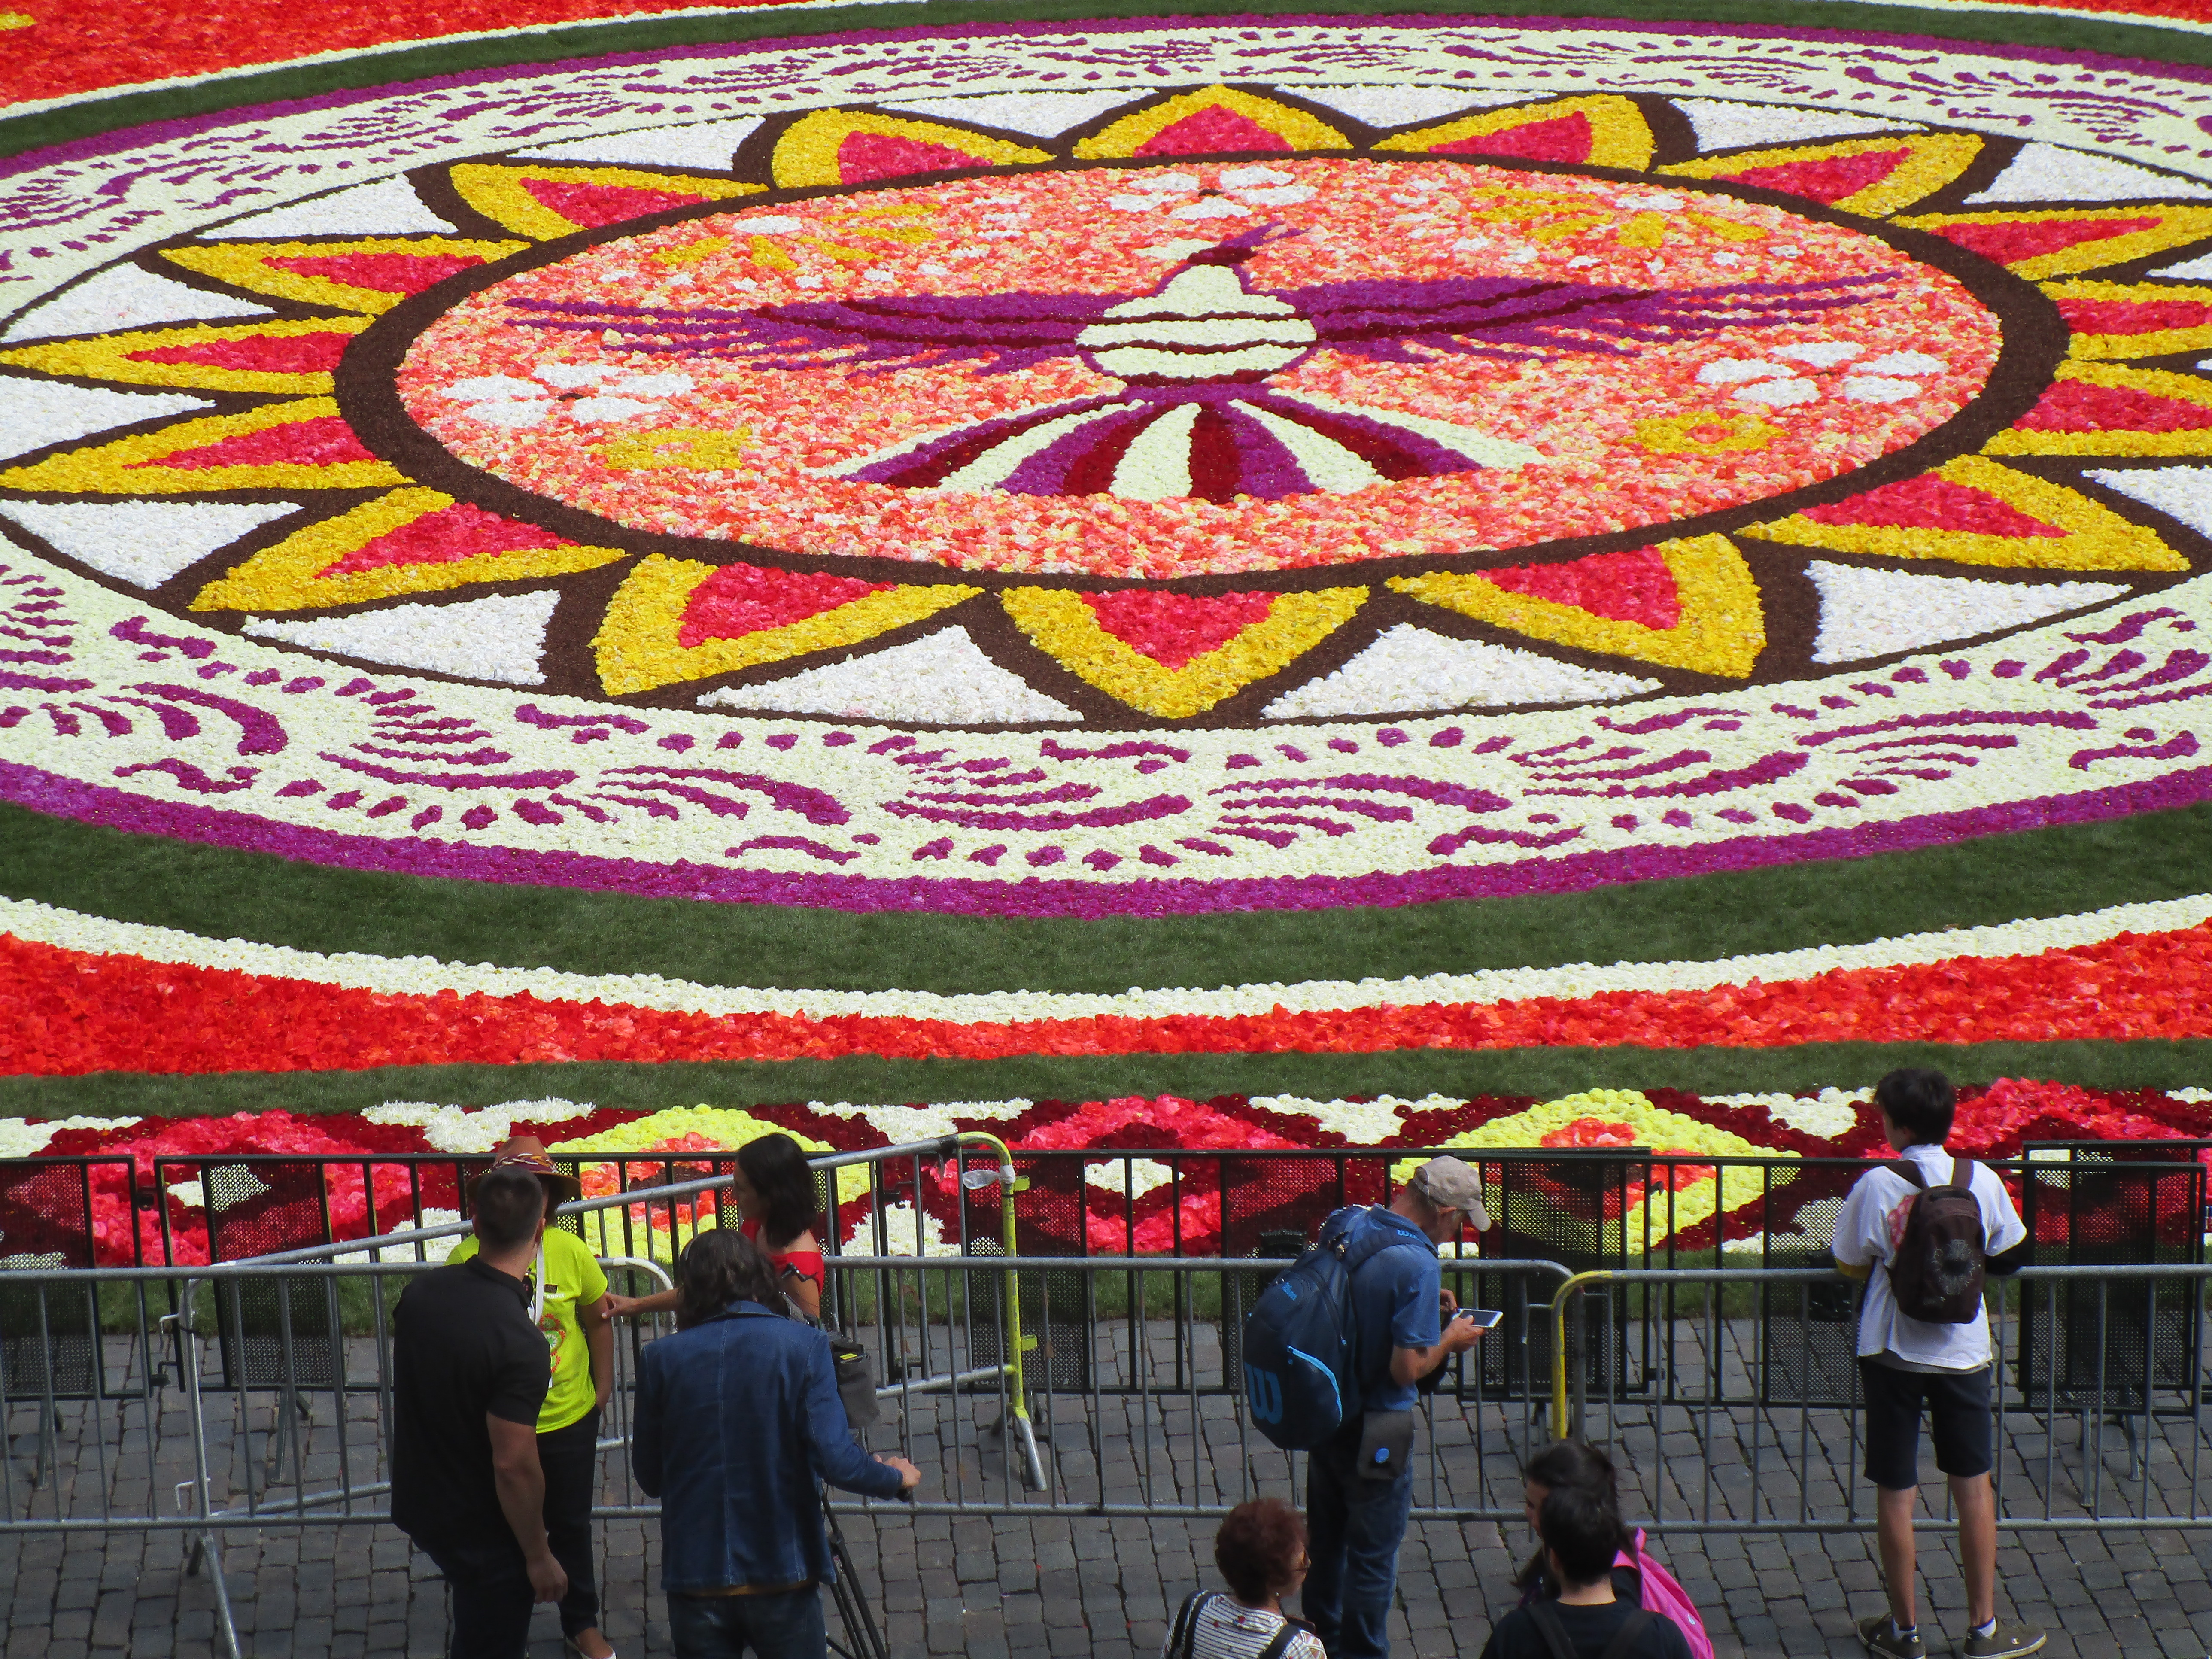 Brussels Flower Carpet in Mexican style